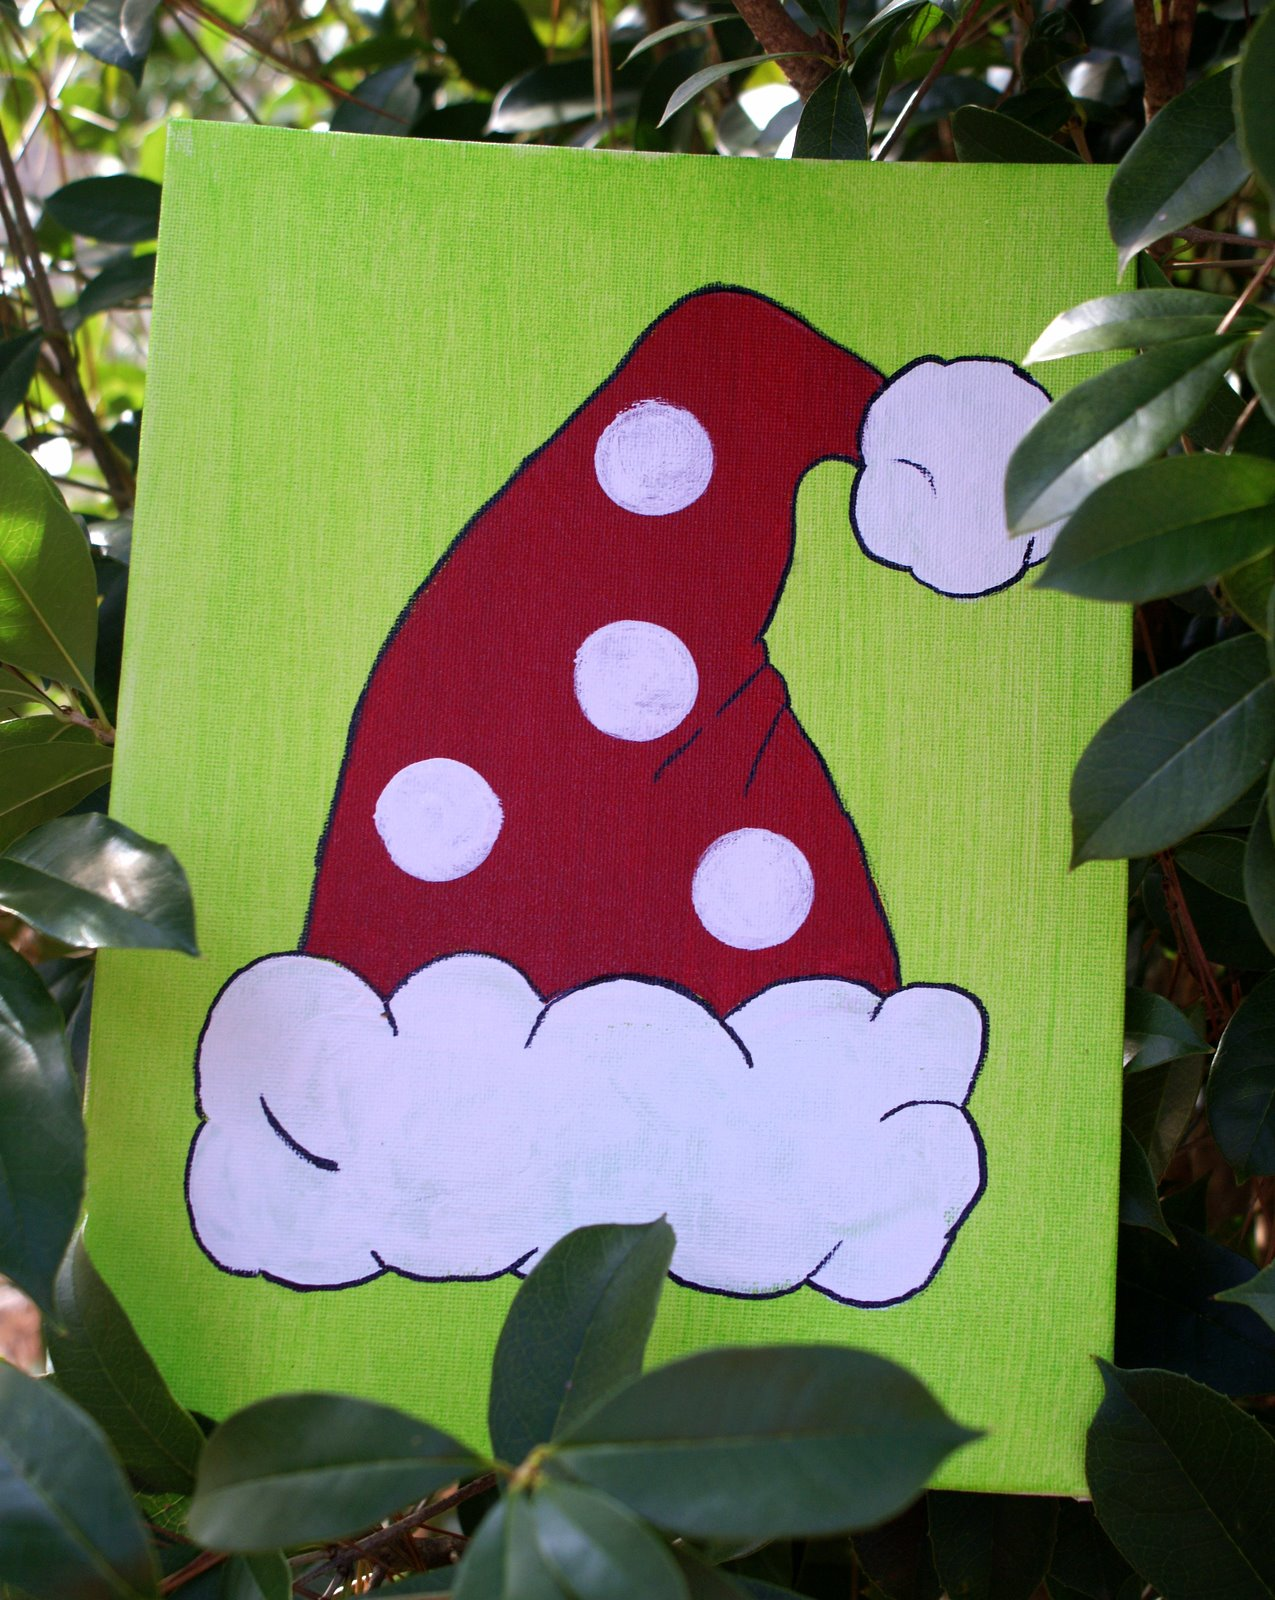 Here Is An Example Of A Completed Painting From Our Christmas PARTy I Painted The Backgrounds Green Days Before Party Thinning Paint Little With